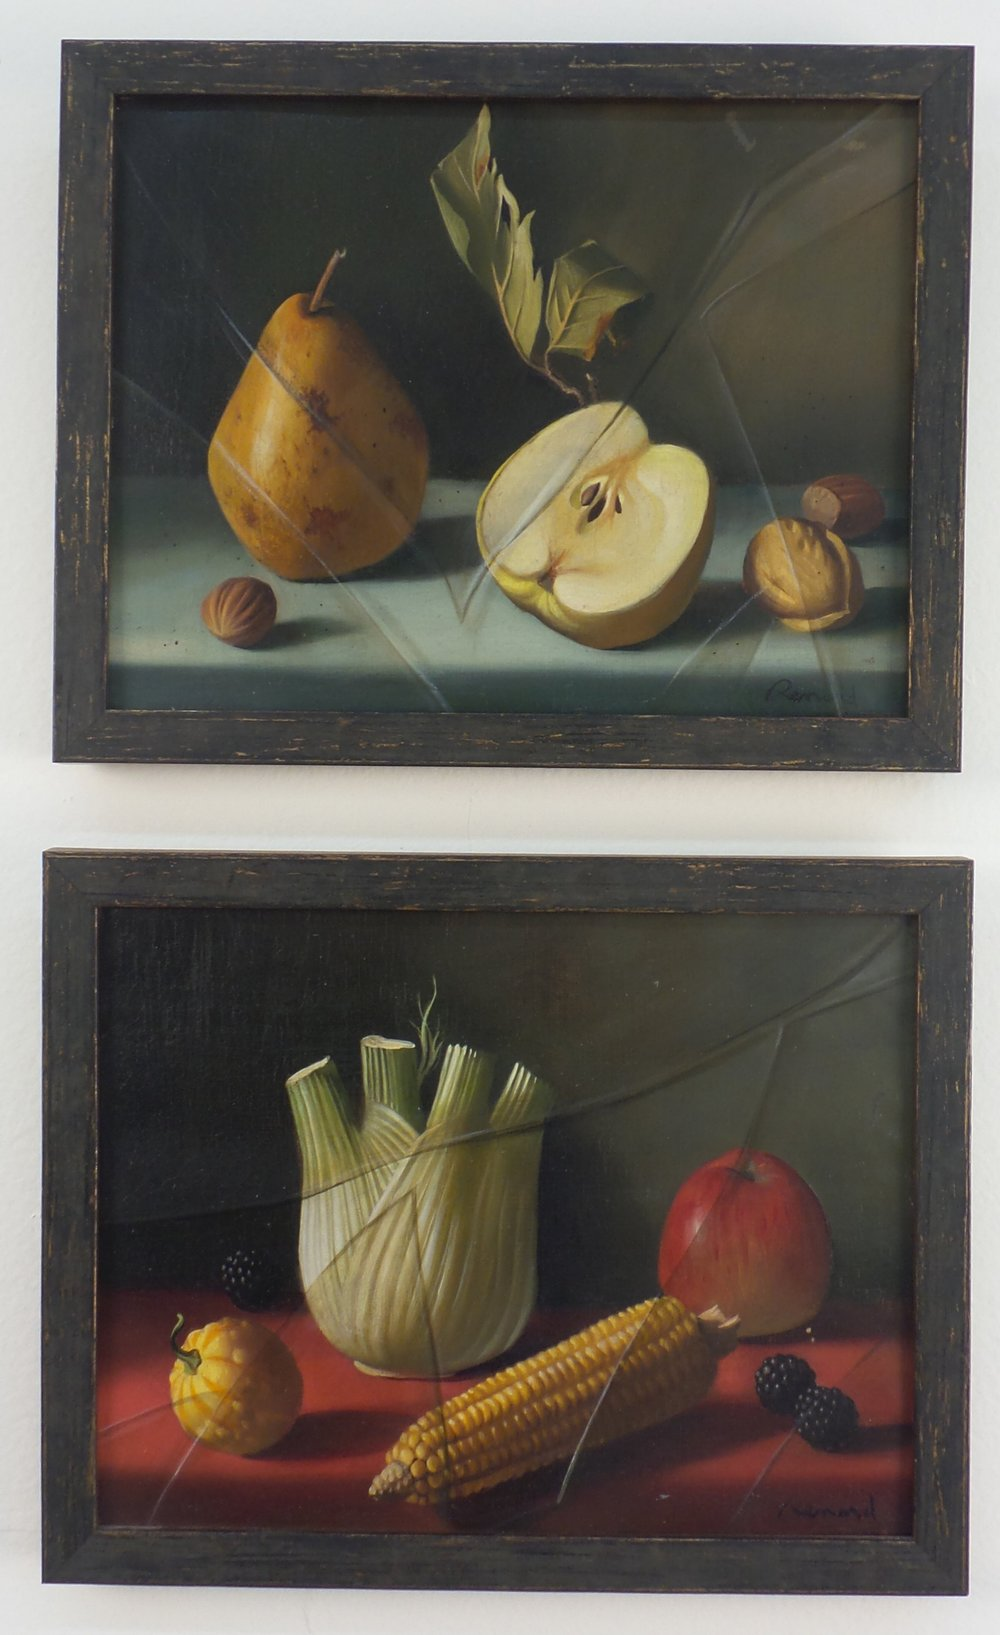 Two works by Fernand Renard for Fred Victoria, oil on canvas, circa 1955, from Tony Victoria's collection